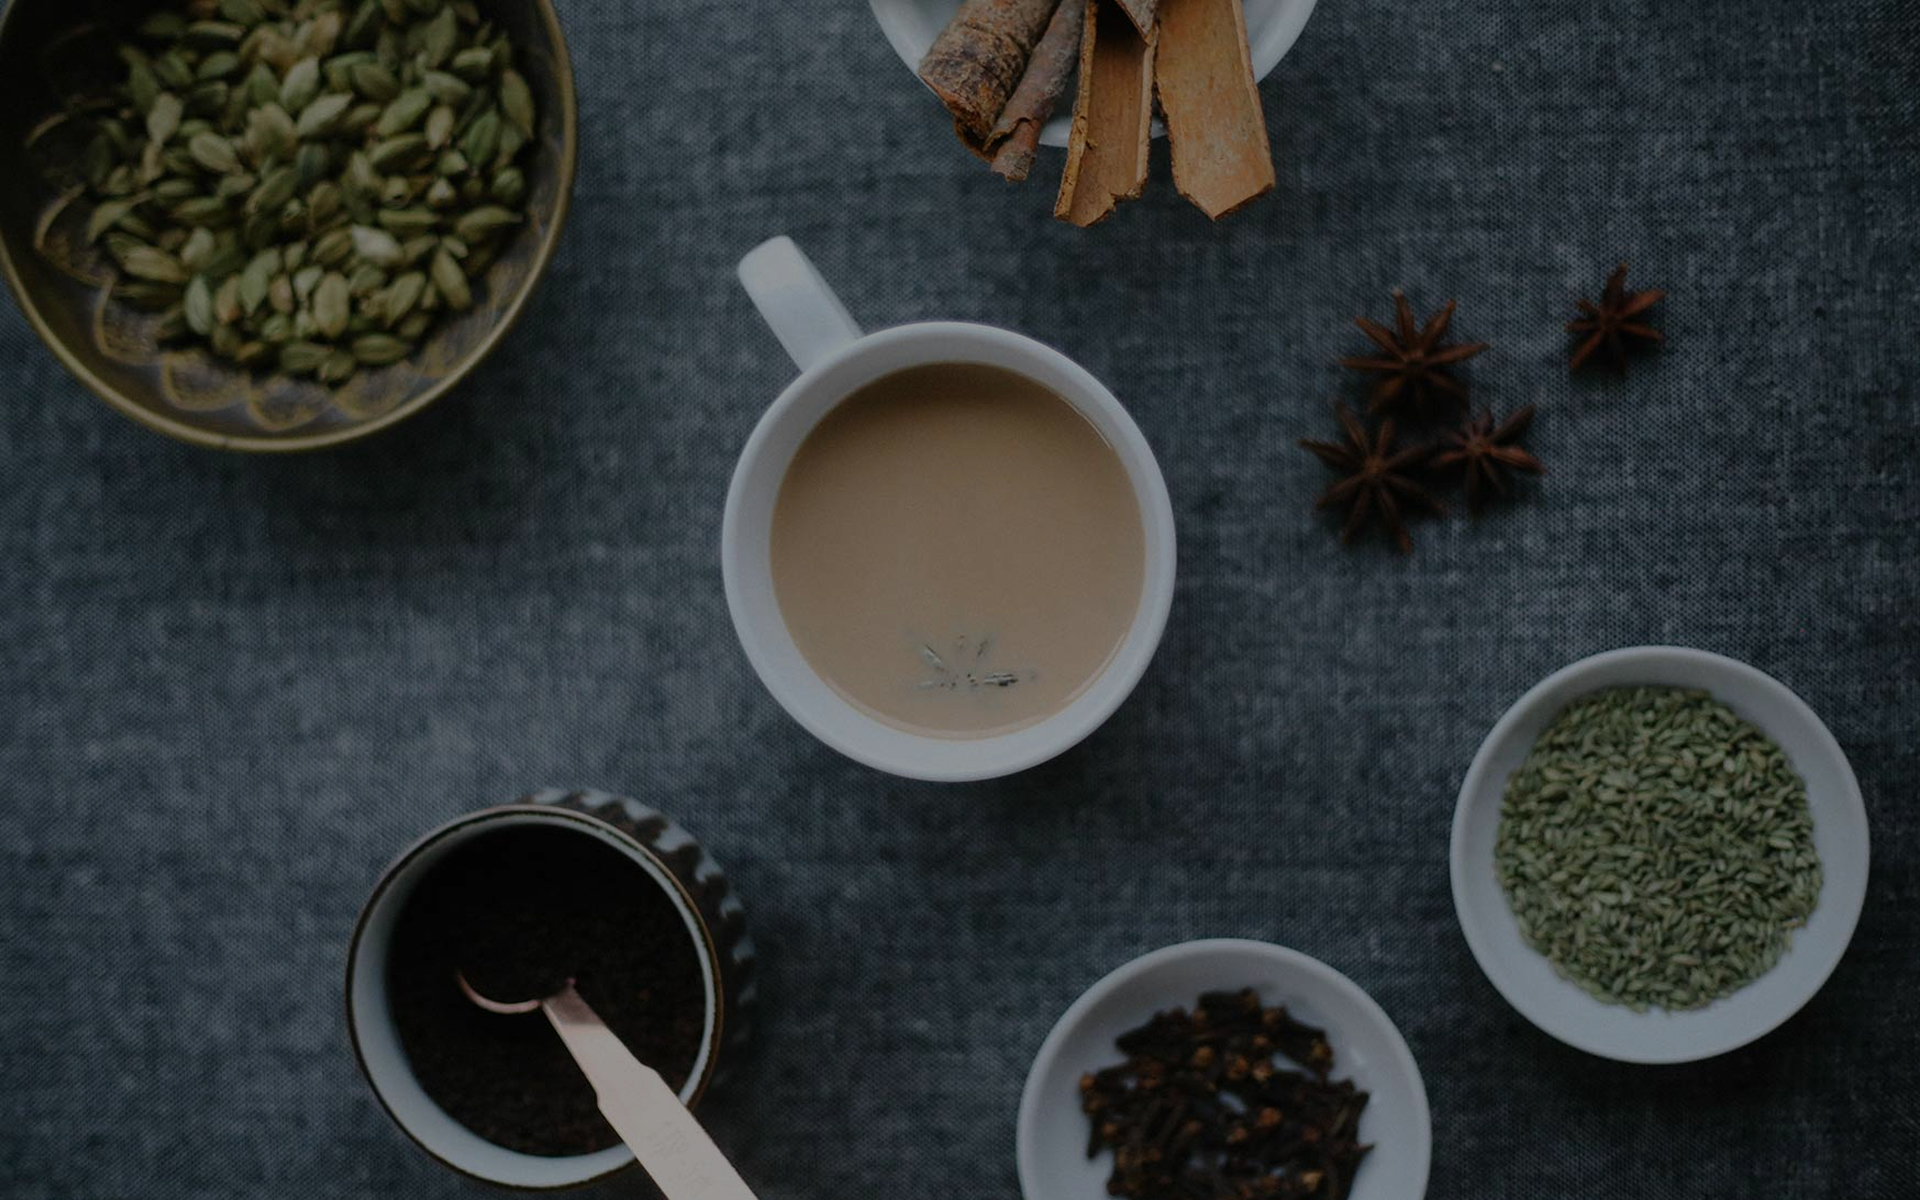 Chai Brings People Together And Encourages Openness And Relationships